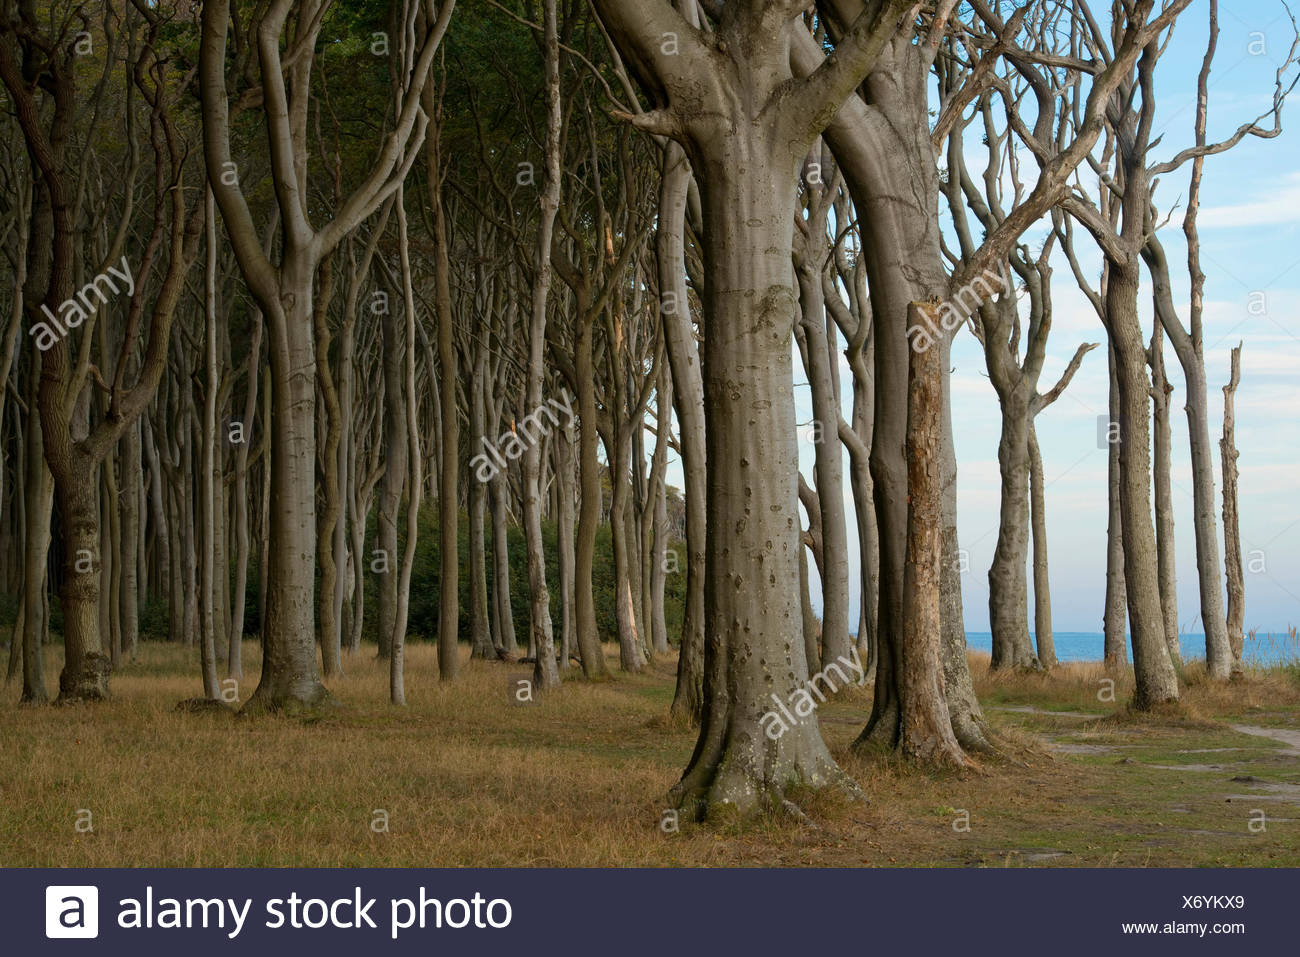 Ghost Forest, beech forest, European Beech or Common Beech trees (Fagus sylvatica), Nienhagen, Mecklenburg-Western Pomerania - Stock Image